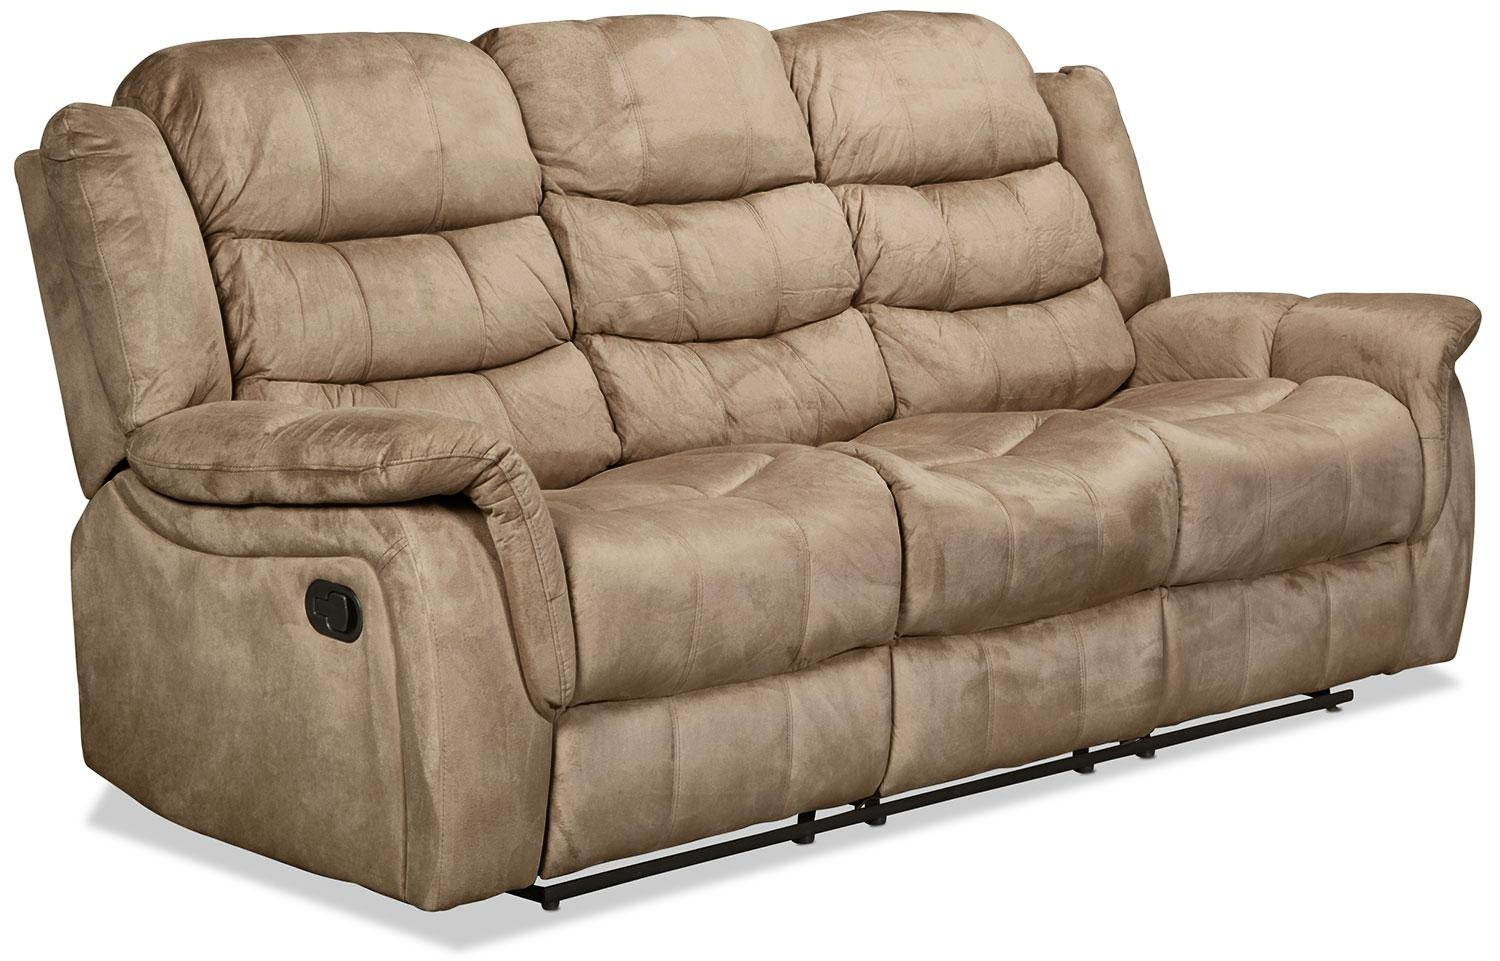 Benton Reclining Sofa – Cobblestone | Levin Furniture In Recliner Sofa Chairs (Image 2 of 20)